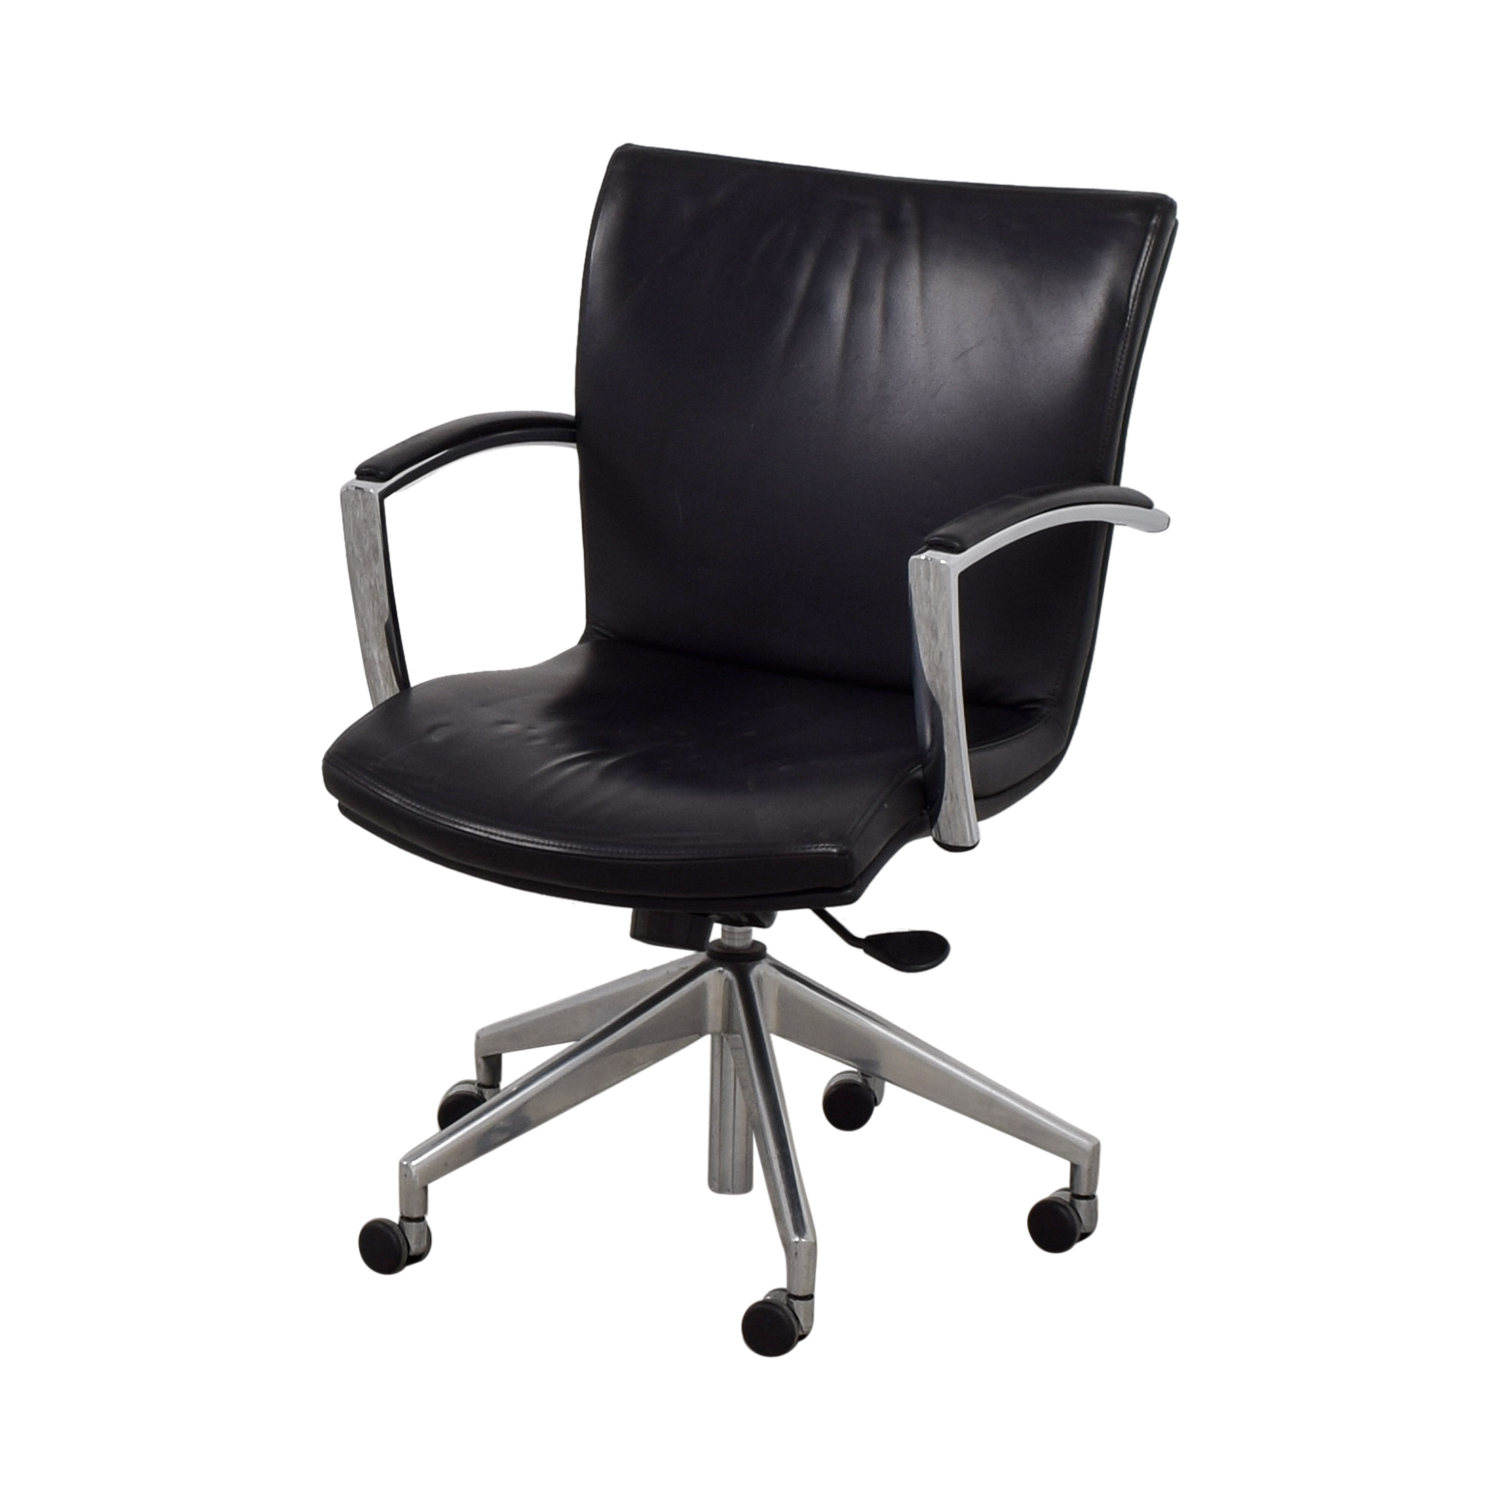 Furniture Chairs Black 61 Off Black Leather Desk Chair Chairs